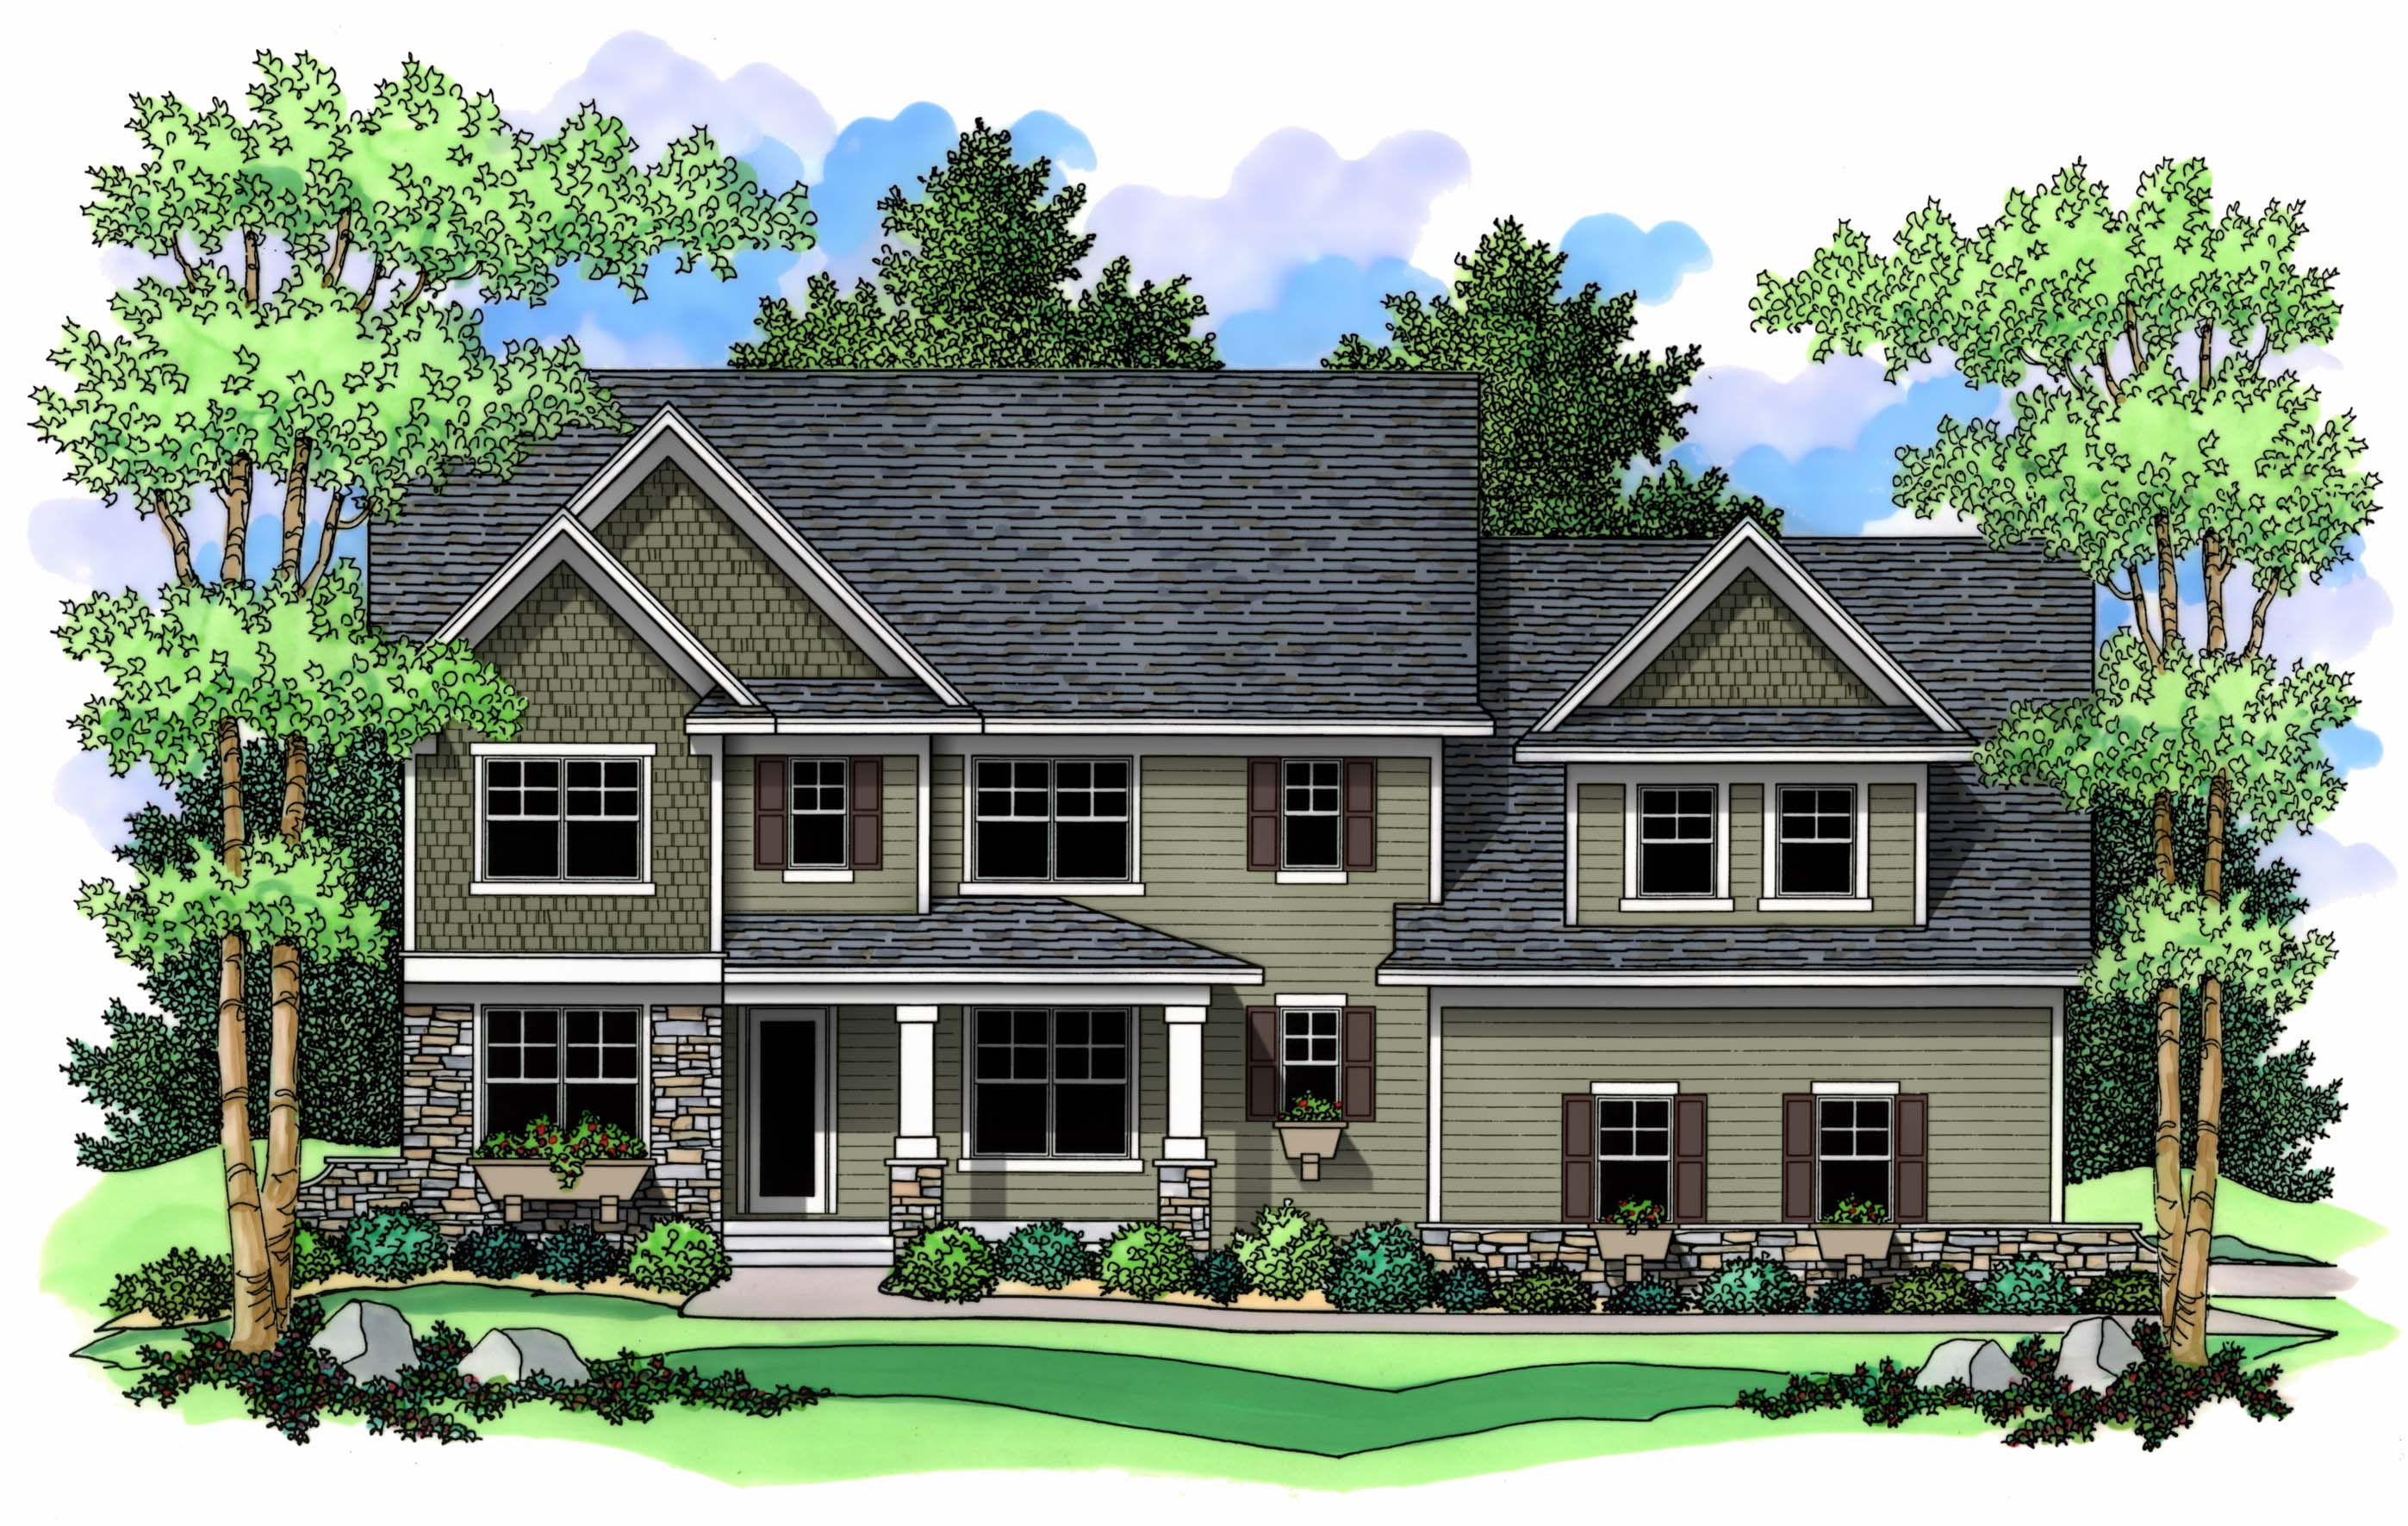 Traditional beauty 14336rk architectural designs for Architecturaldesigns com house plan 56364sm asp